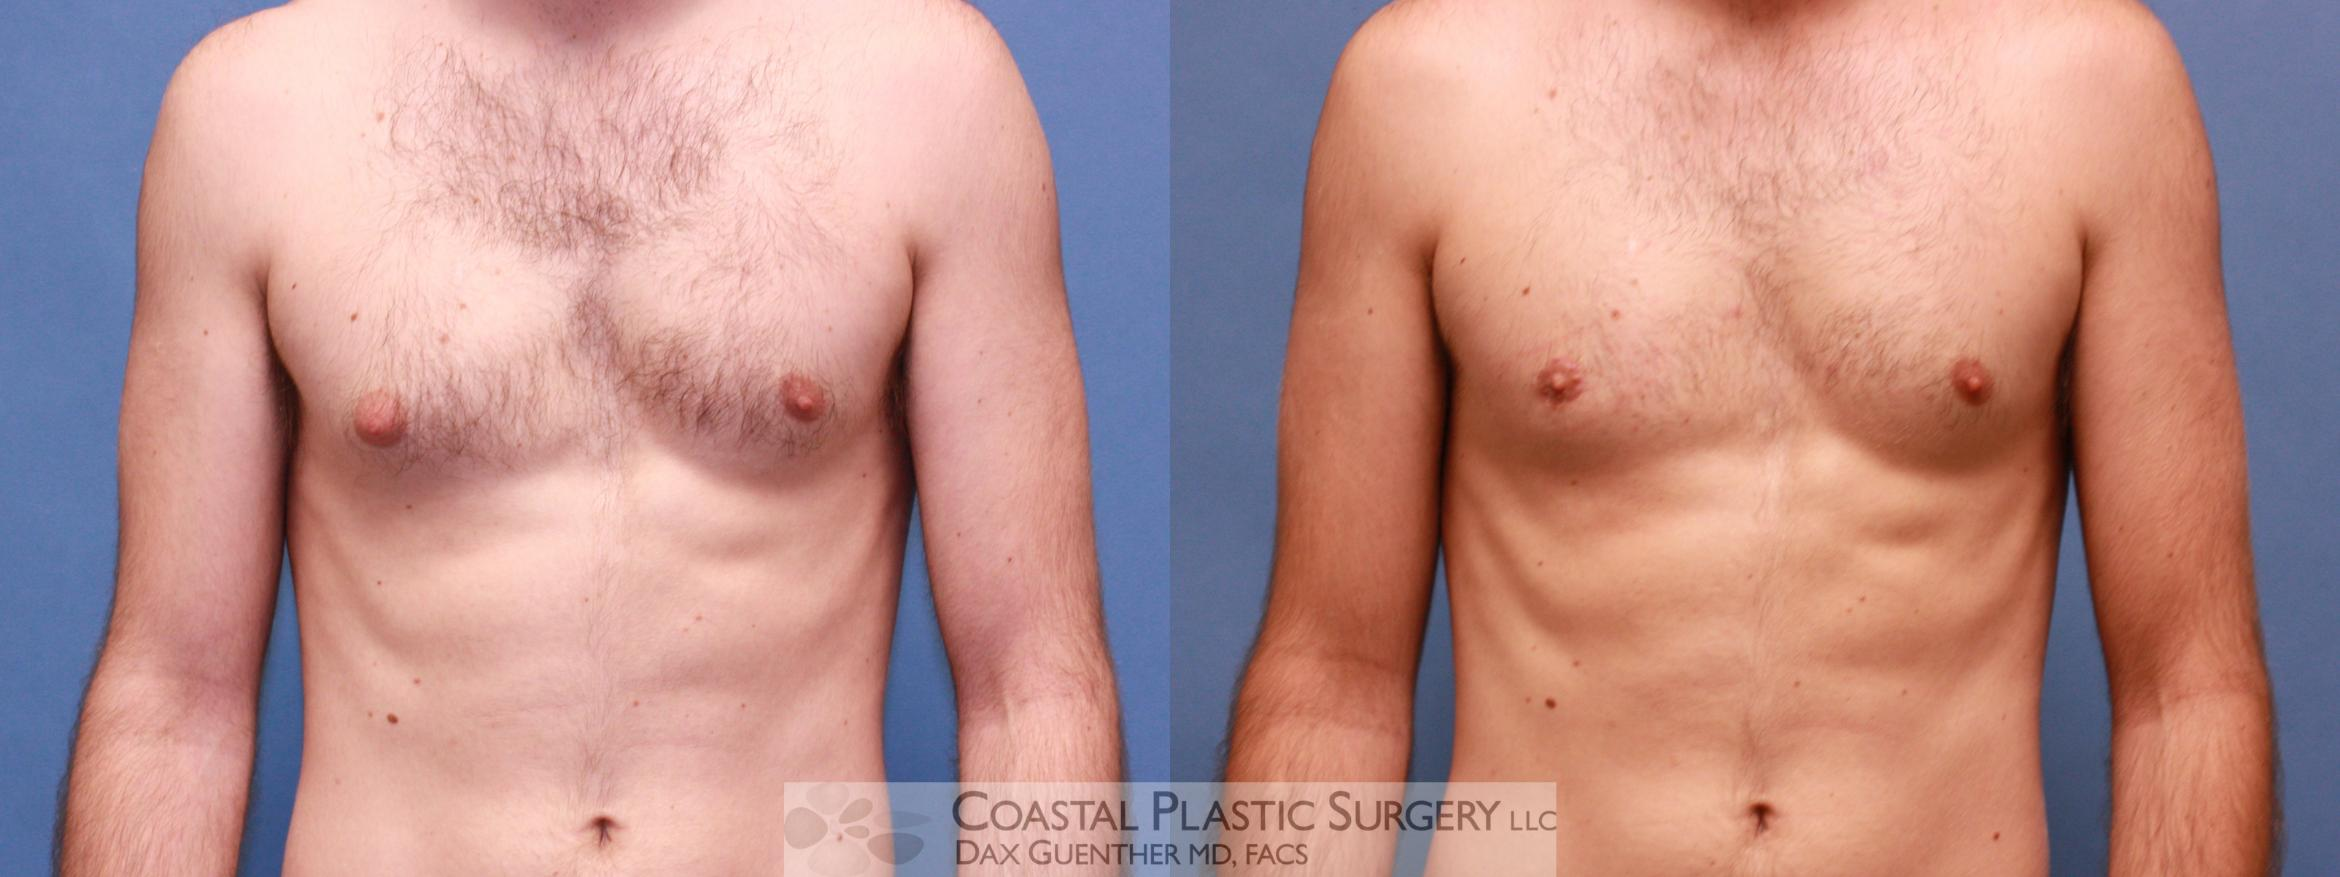 Male Breast Reduction (Gynecomastia) Before & After Photo | Hingham, Boston & Nantucket, MA | Dax Guenther, MD: Coastal Plastic Surgery